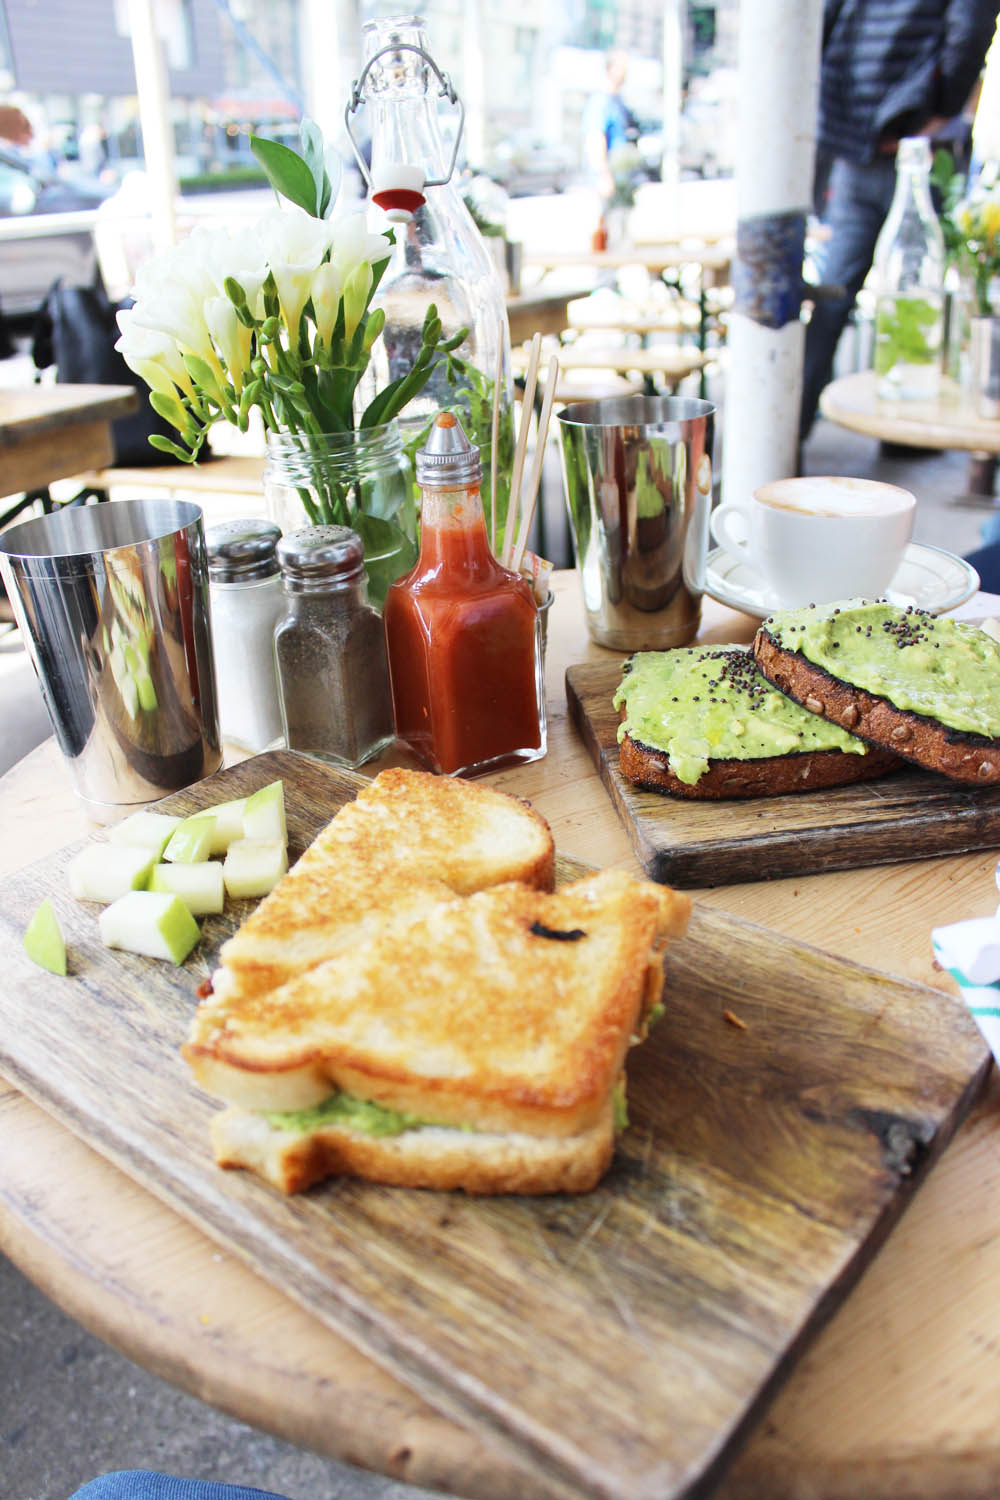 fatimayarie-avocadobread-thebutchersdaughter-newyorkcity-food-travel-img_8391